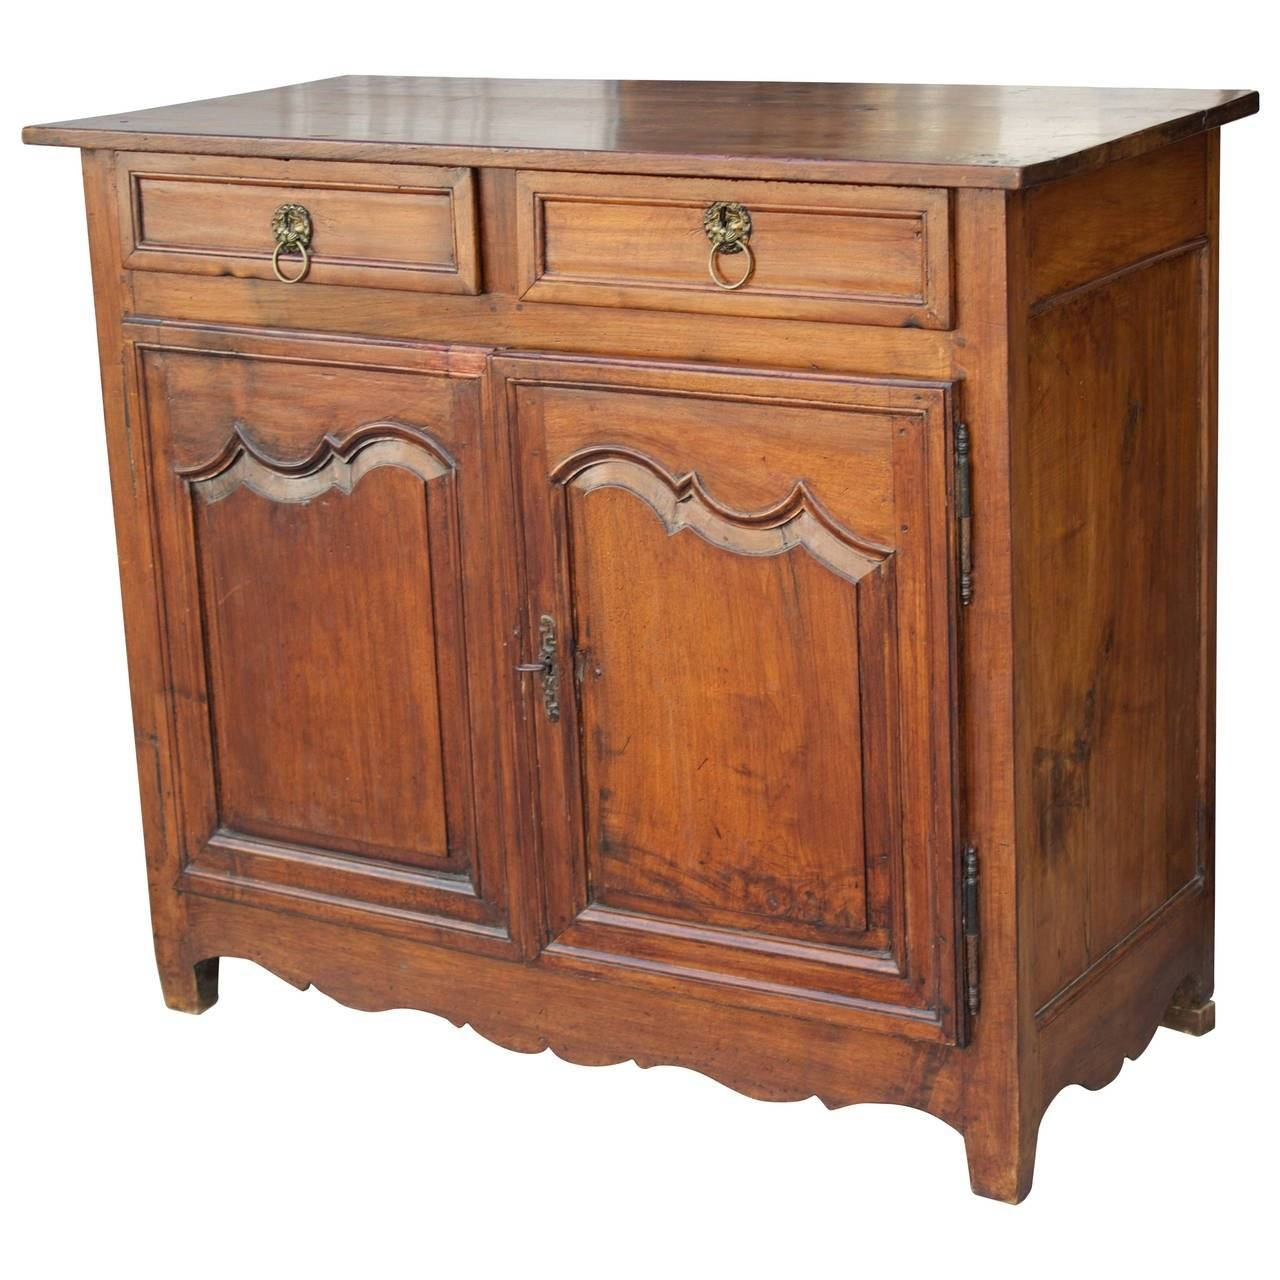 18Th Century French Country Louis Xiv Walnut Buffet Or Sideboard Regarding Sideboard For Sale (#1 of 20)